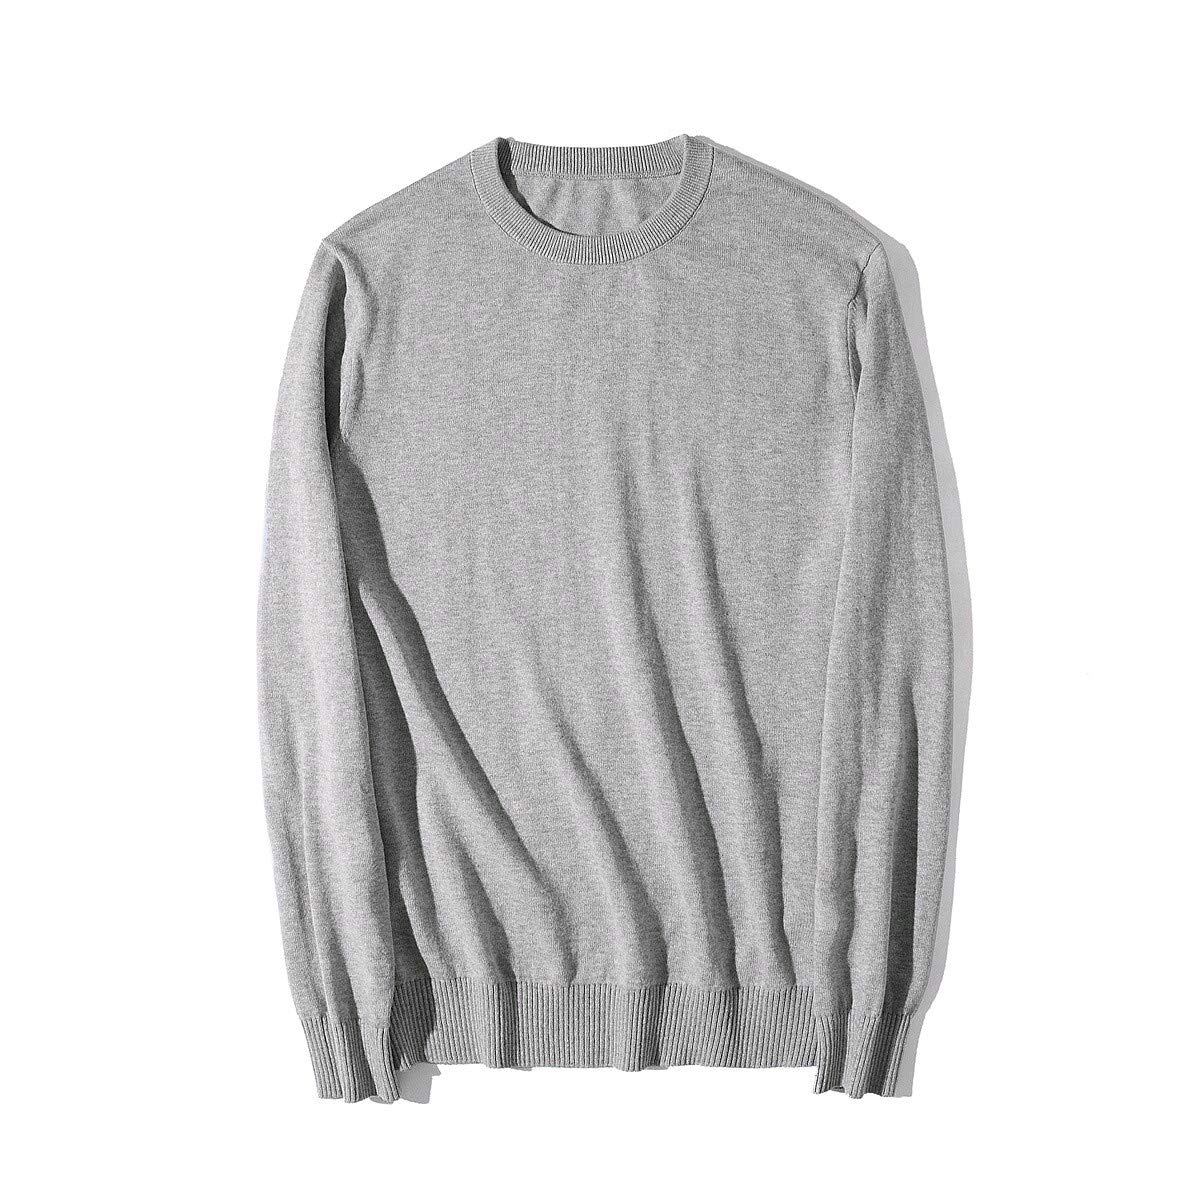 YUNY Mens His and Her Juniors Colortone Knitting Tshirt Sweater Light Grey XS